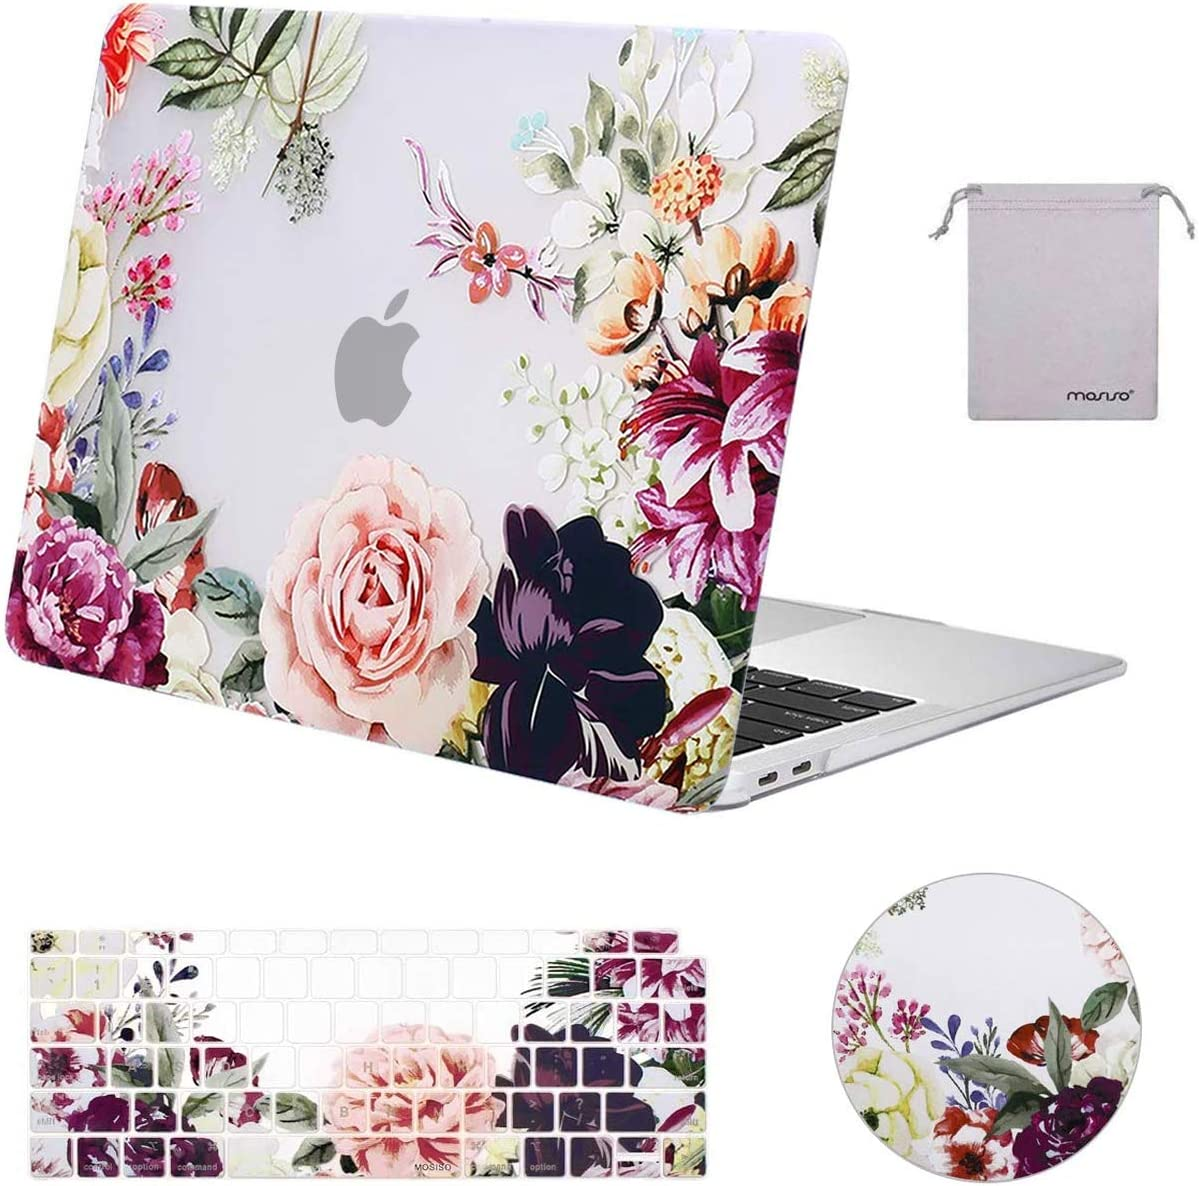 MOSISO MacBook Air 13 inch Case 2020 2019 2018 Release A2179 A1932 Retina Display,Plastic Pattern Hard Case & Keyboard Cover & Mouse Pad & Storage Bag Only Compatible with MacBook Air 13, Rose Leaves